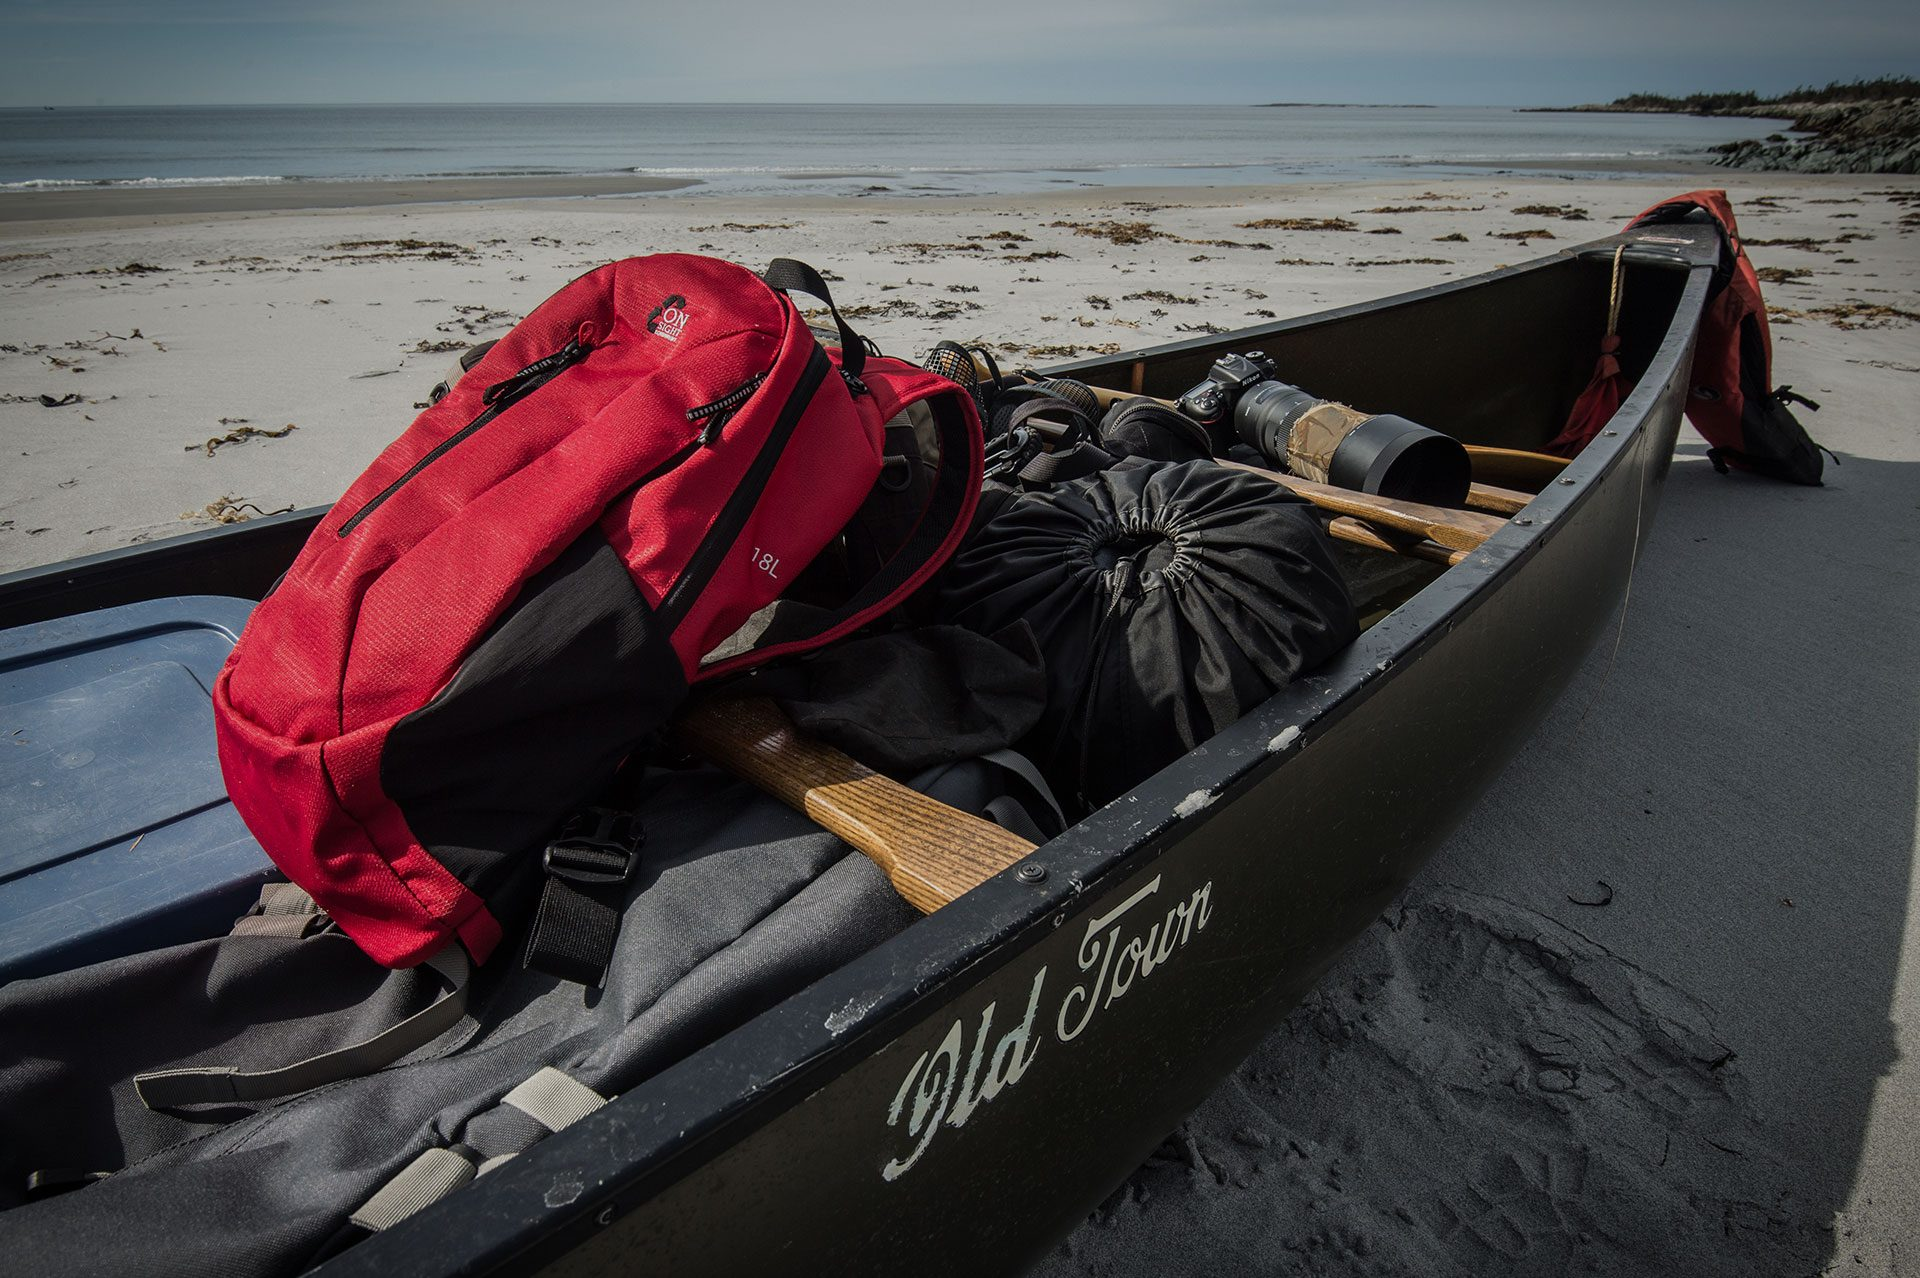 backpack on canoe at beach